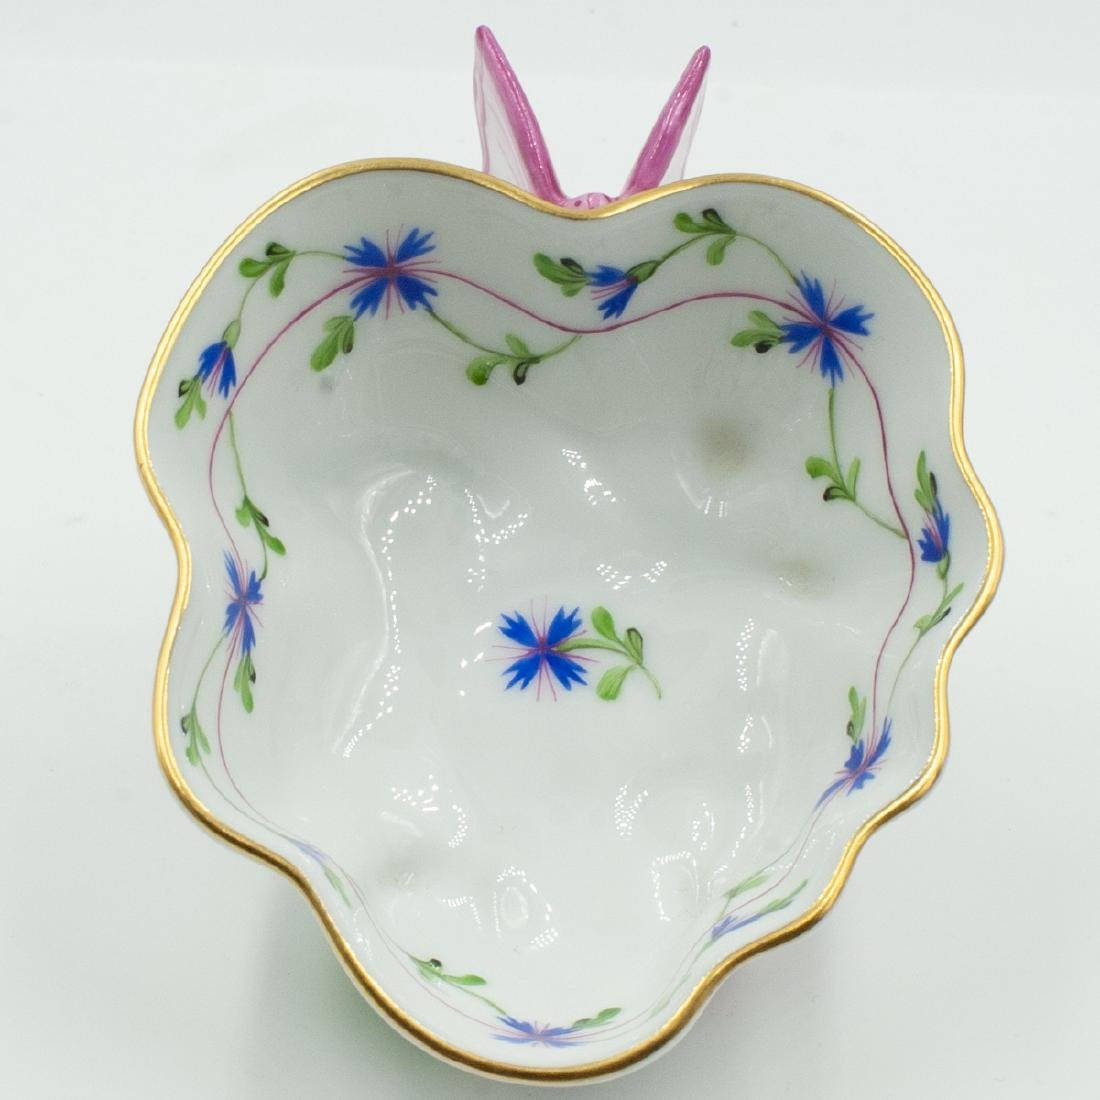 Herend Porcelain Leaf Dish - 5